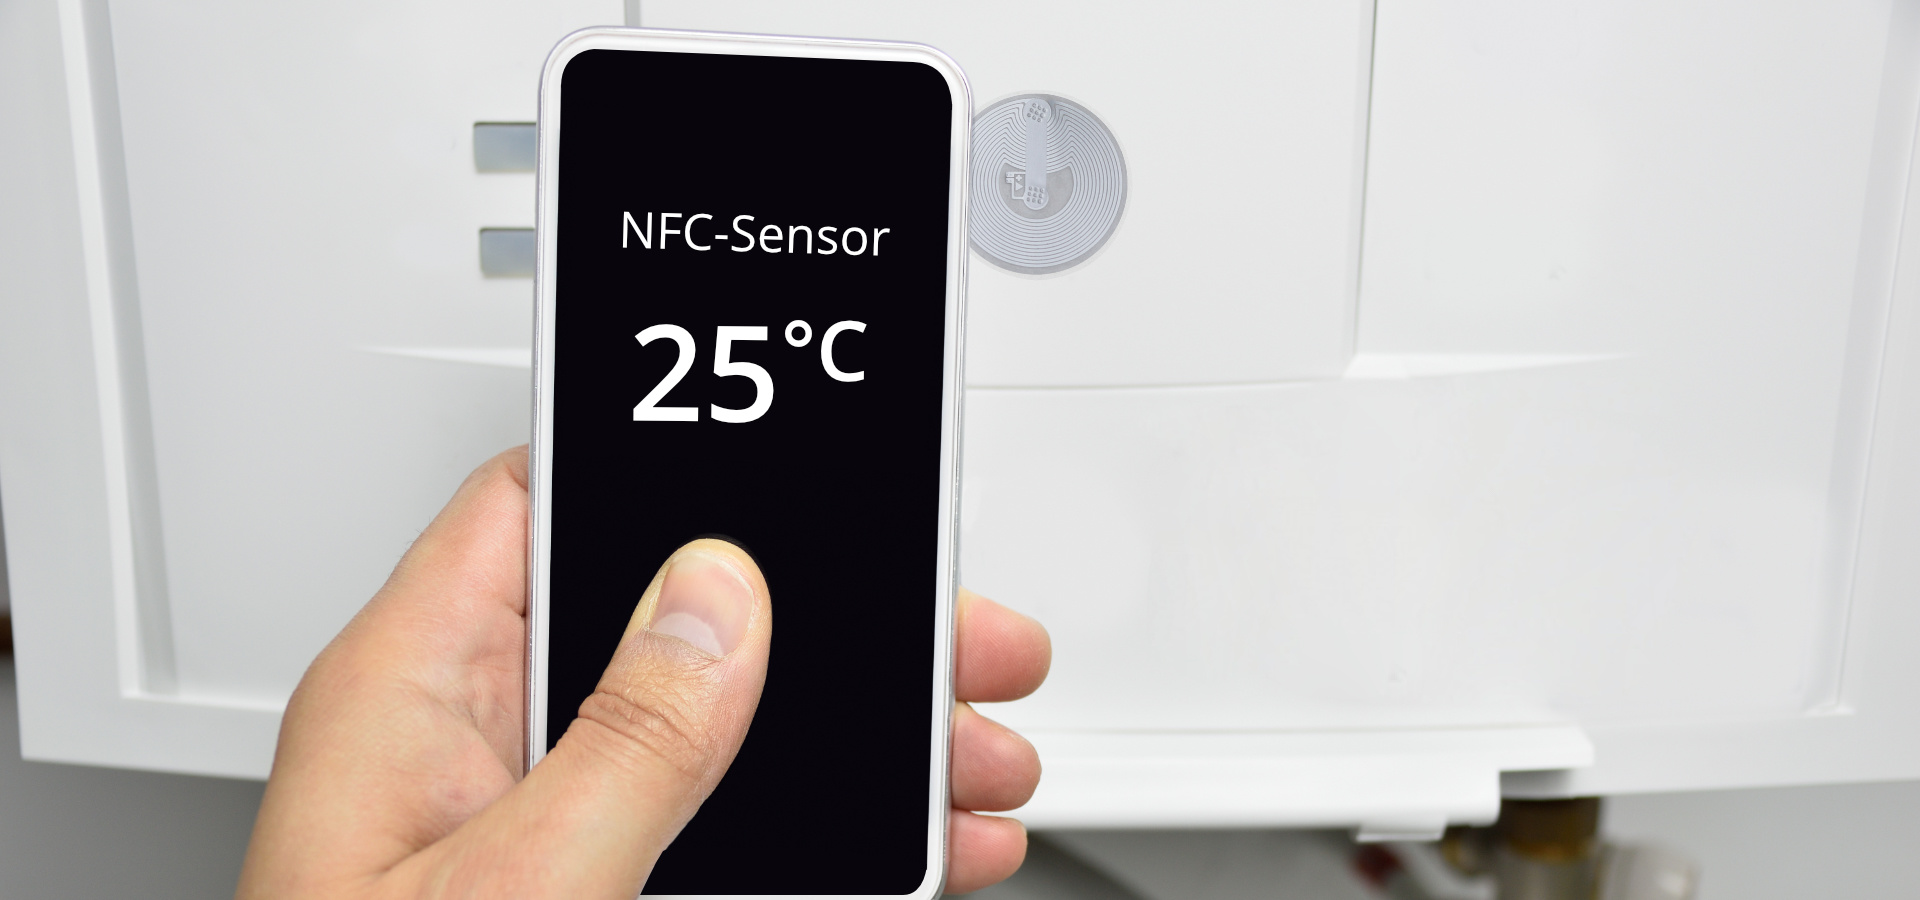 NFC temperature sensor shows 25 degrees Celsius